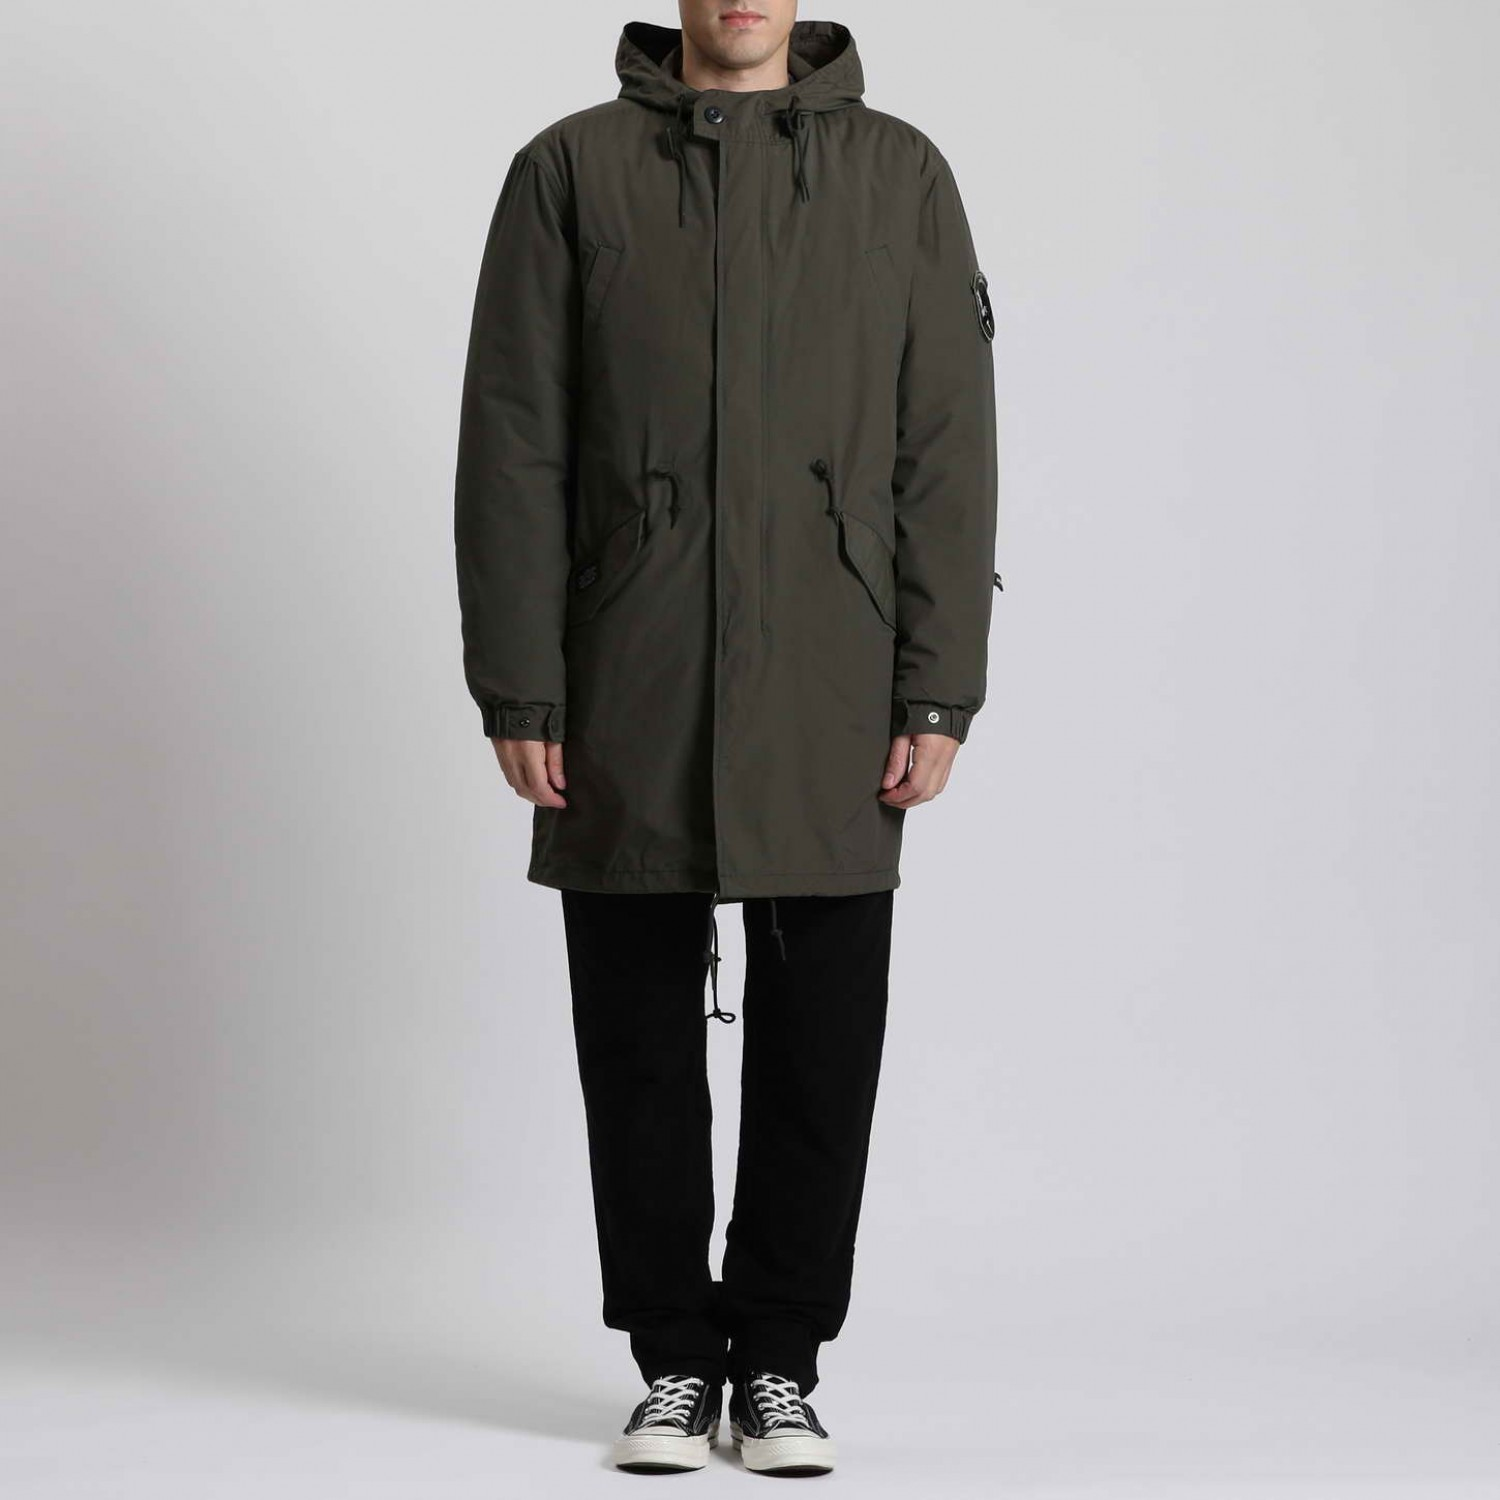 MADNESS M-51 2-IN-1 FISHTAIL PARKA | MADNESS